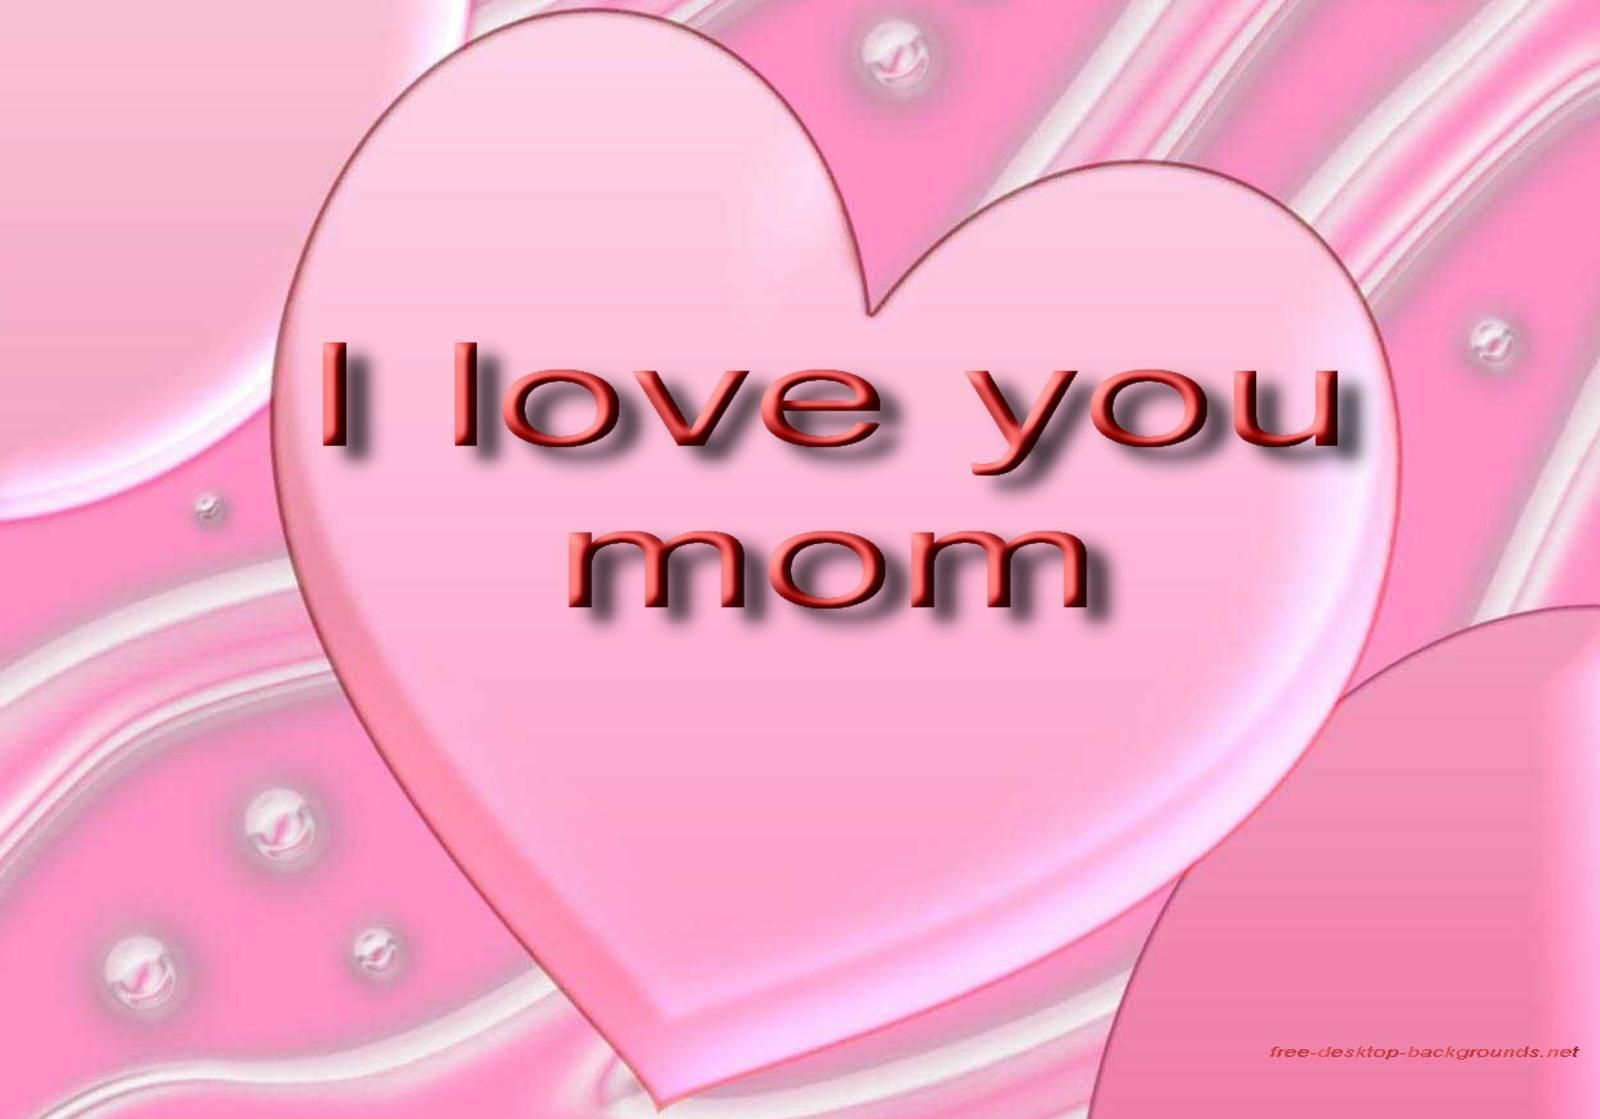 Best images of love you mother -   I Love You Mom Wallpapers Wallpaper Cave within Best images of love you mother   1600 X 1119  Download  Best images of love you mother wallpaper from the above display resolutions for HQ Widescreen 4K UHD 5K 8K Ultra HD